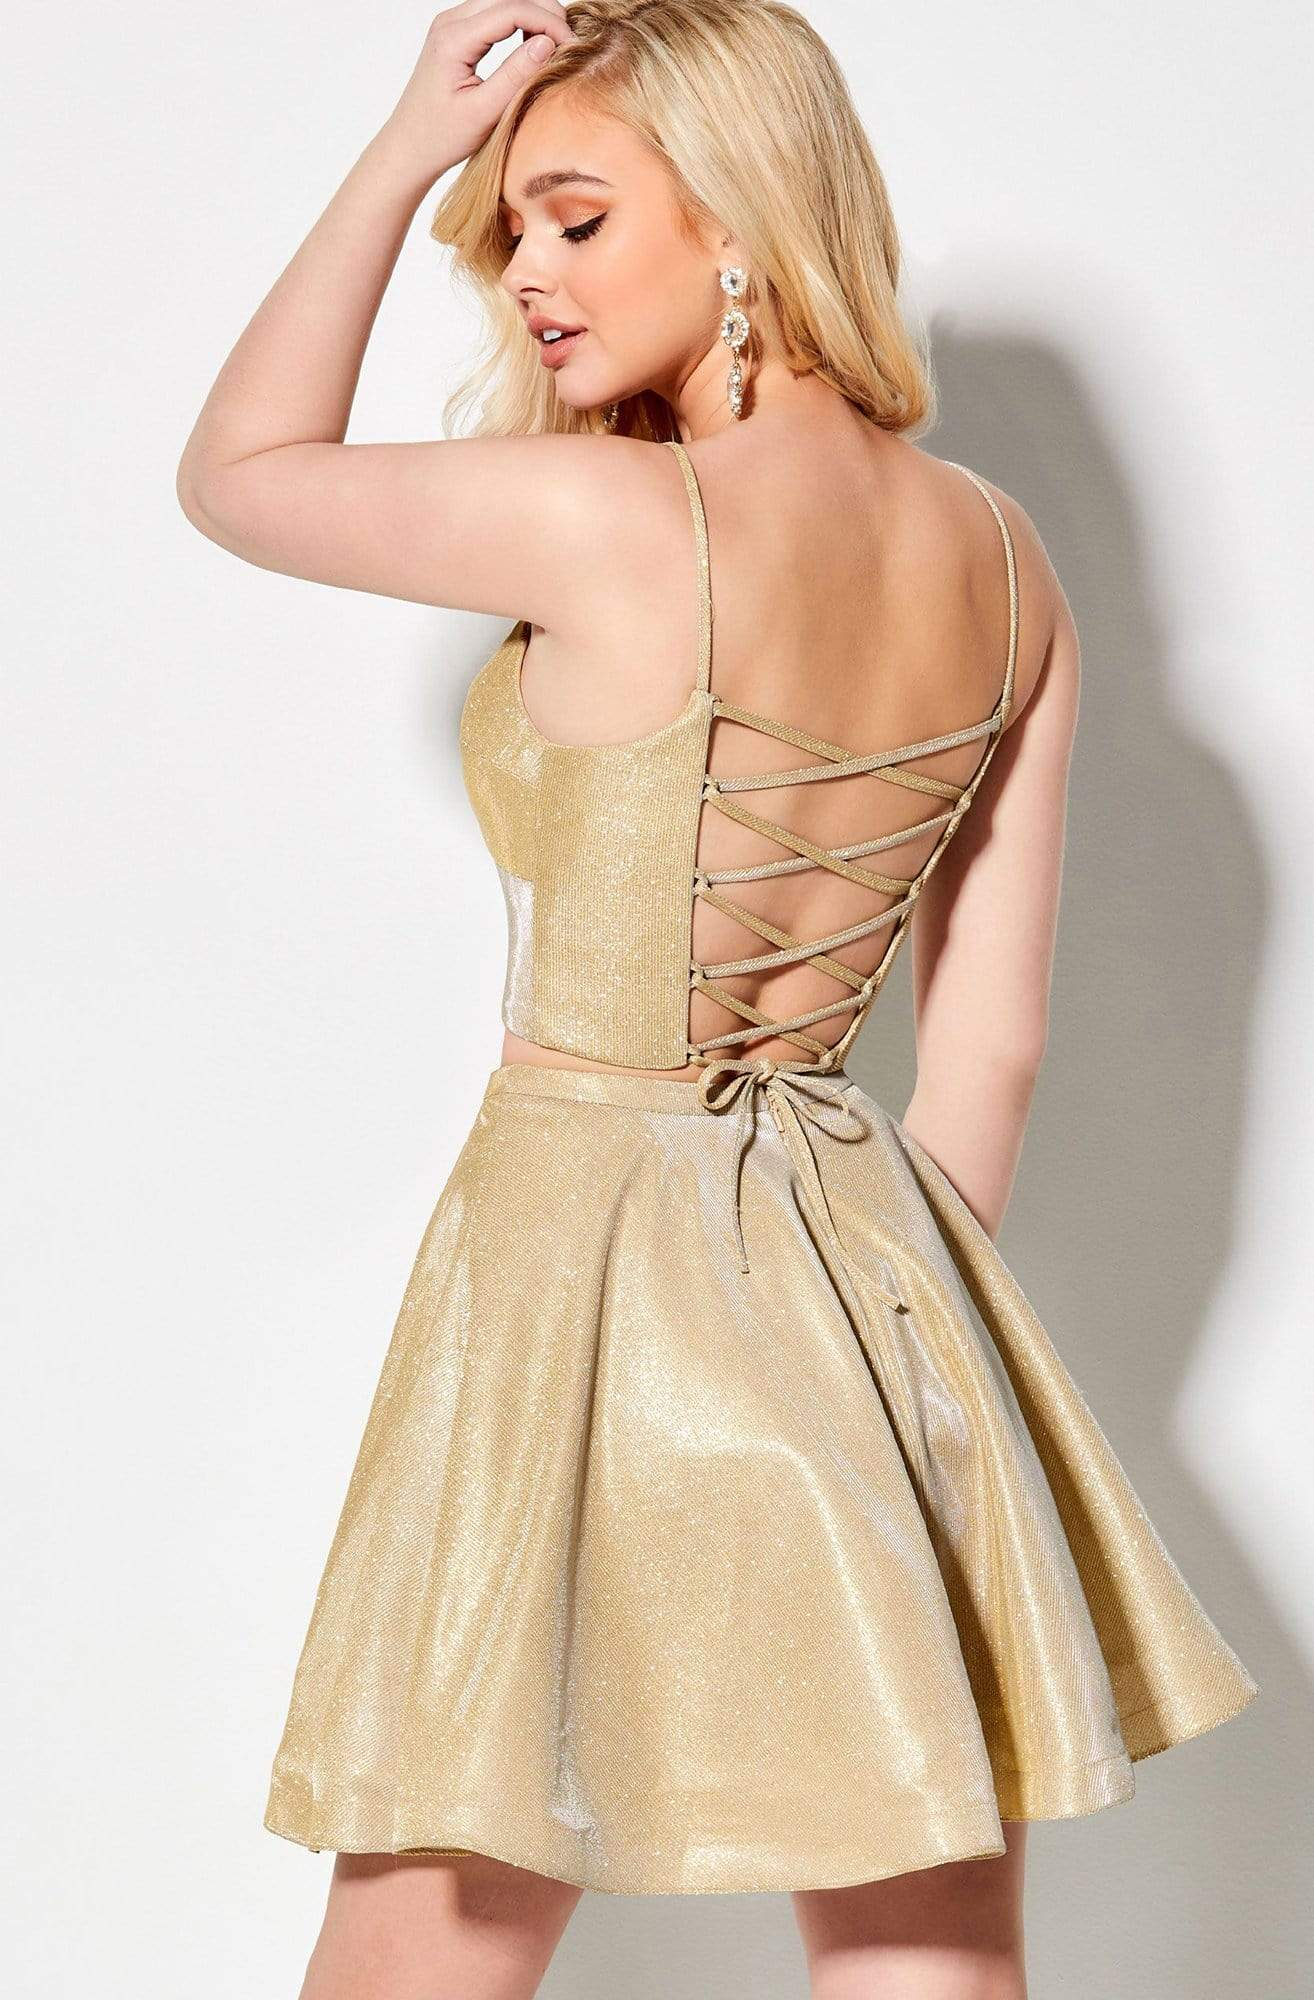 Ellie Wilde - EW21921S Two-Piece Lace-Up Back Glitter Stretch Dress In Gold